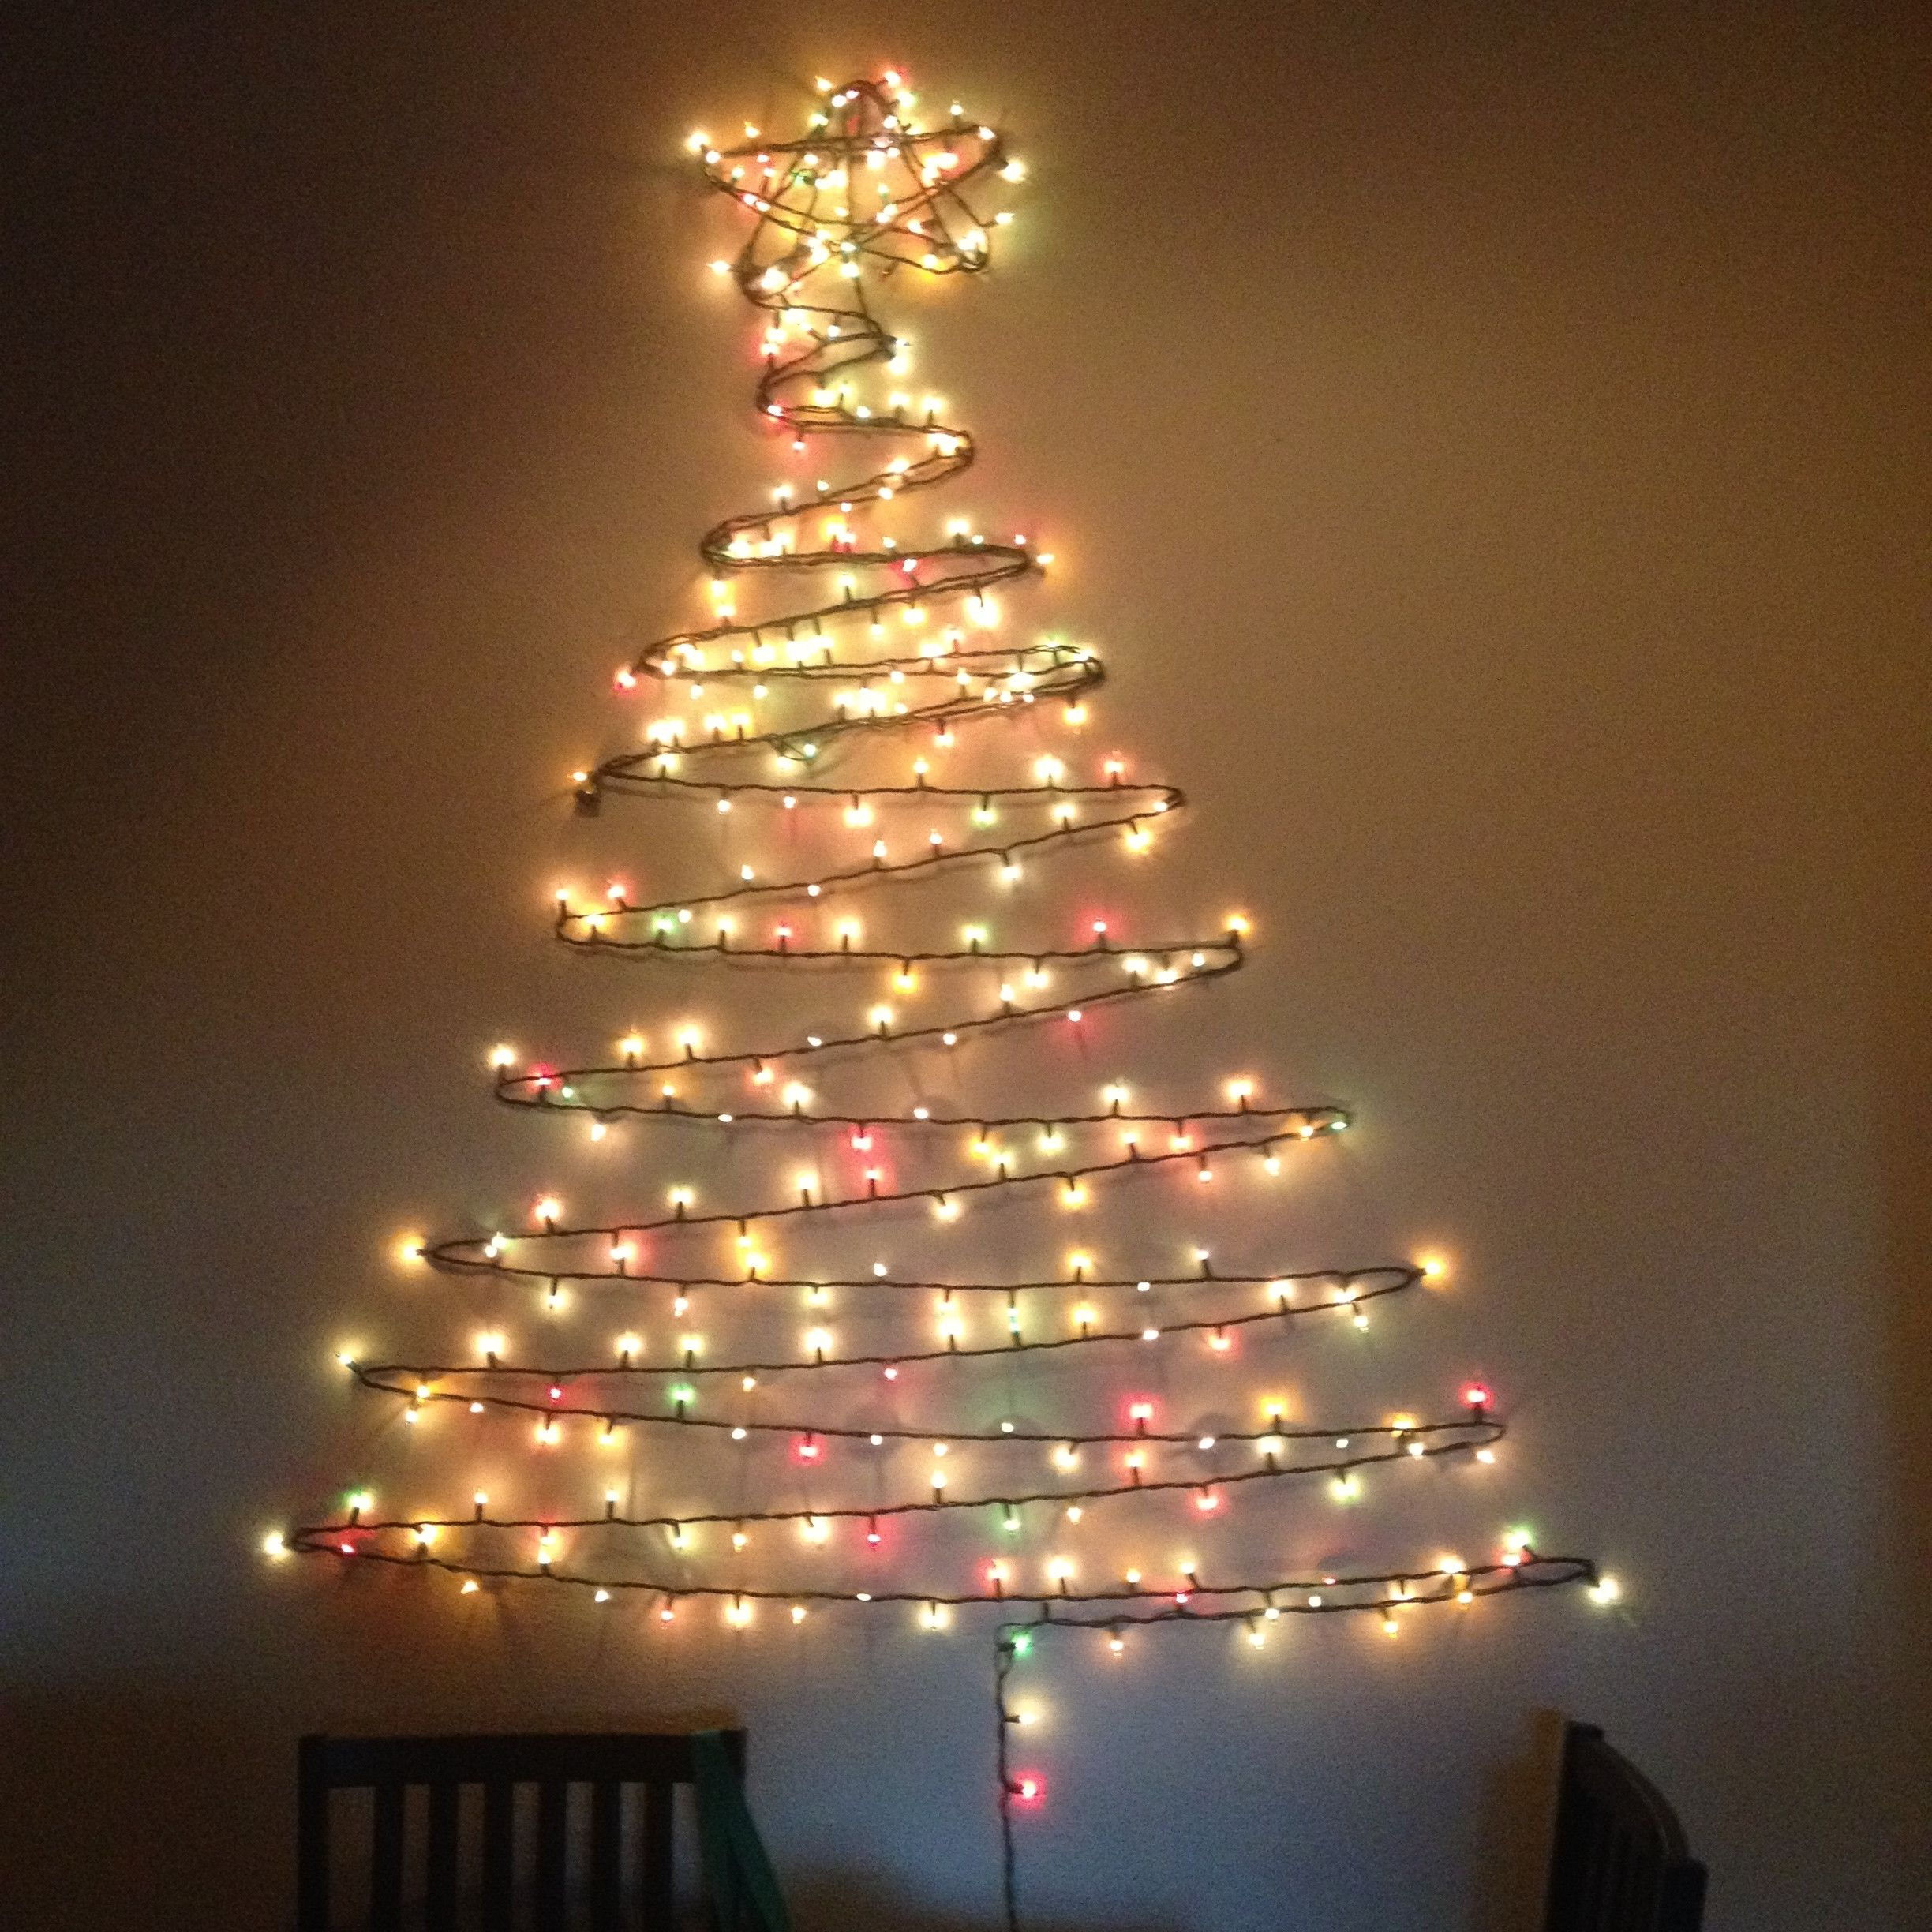 11 last-minute DIY Christmas trees. Diy Christmas LightsWall ...